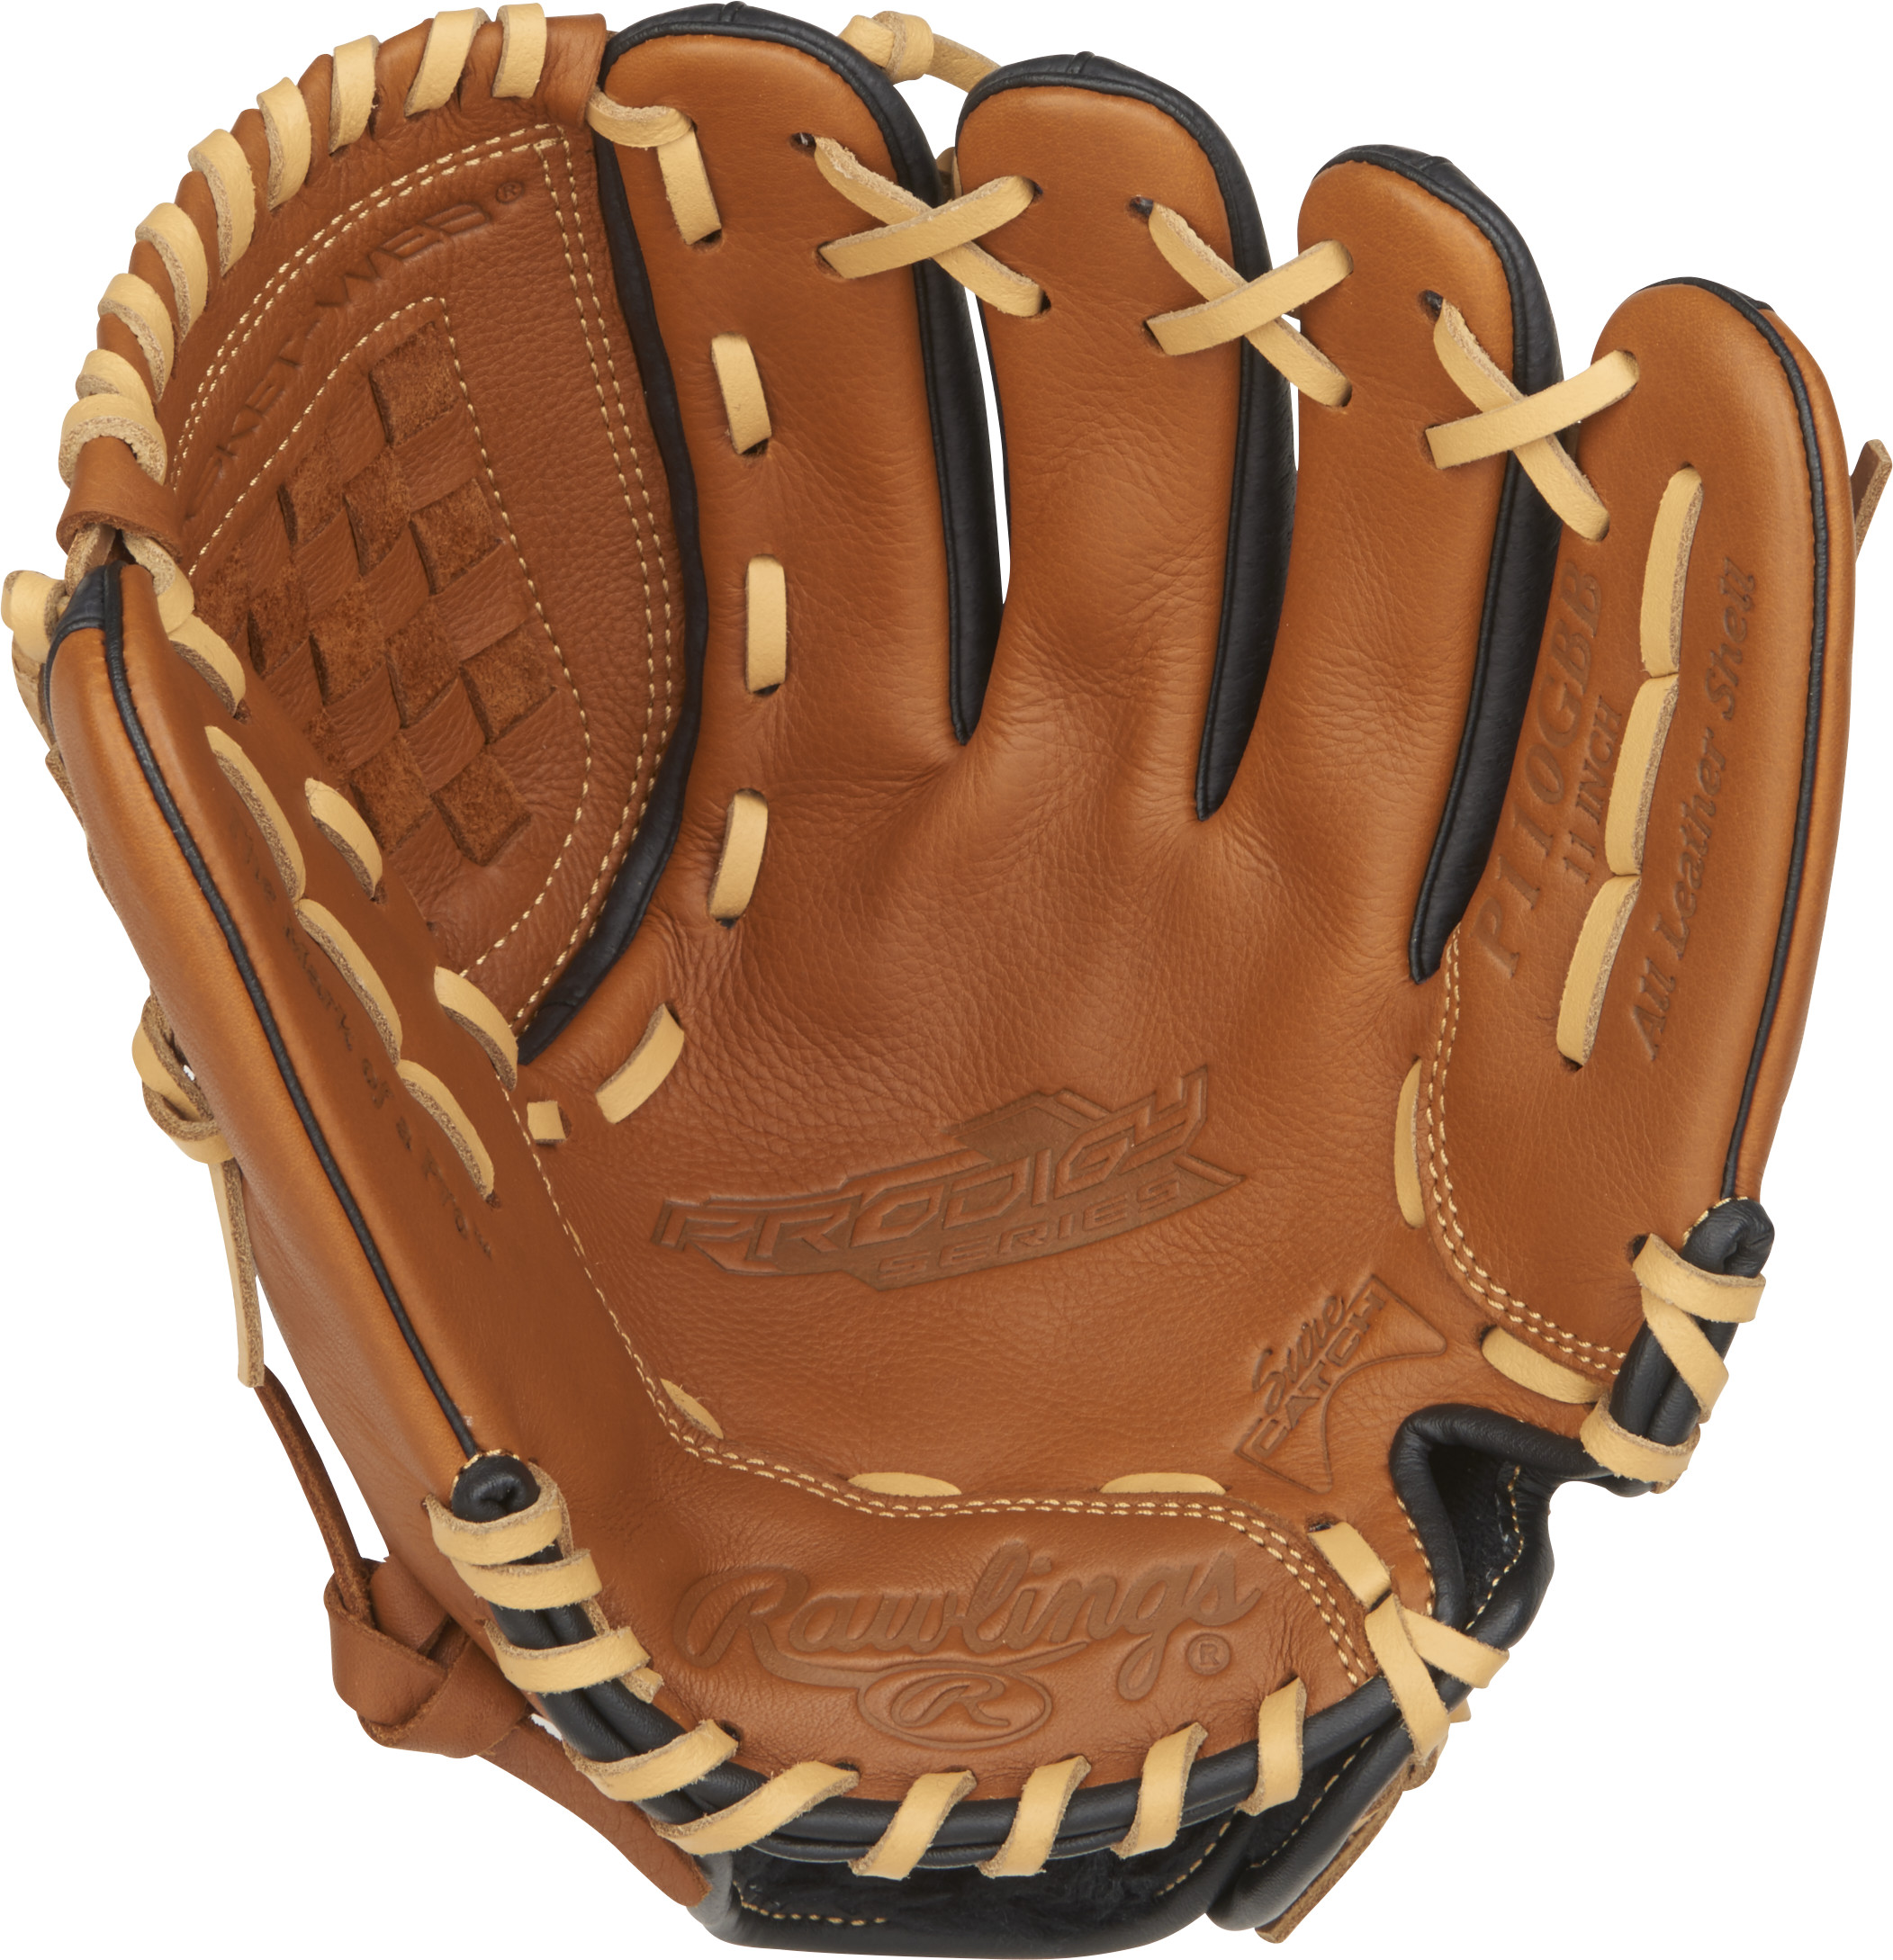 http://www.bestbatdeals.com/images/gloves/rawlings/P110GBB-1.jpg